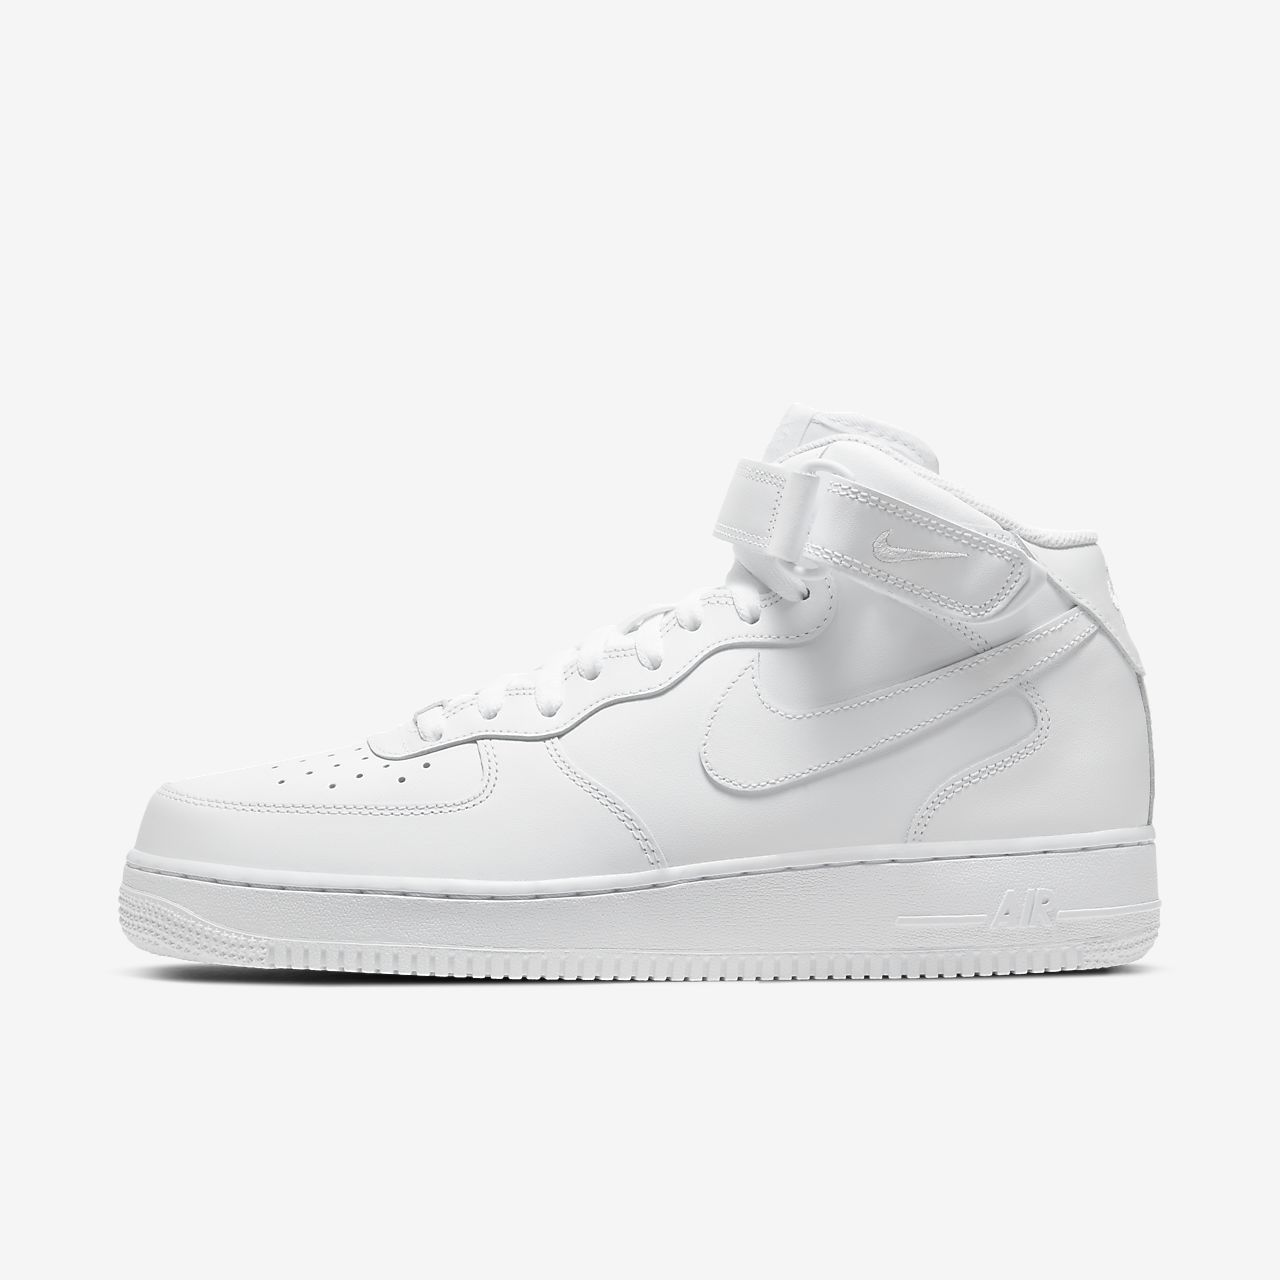 super popular b0fe8 27ad0 ... Calzado para hombre Nike Air Force 1 Mid  07